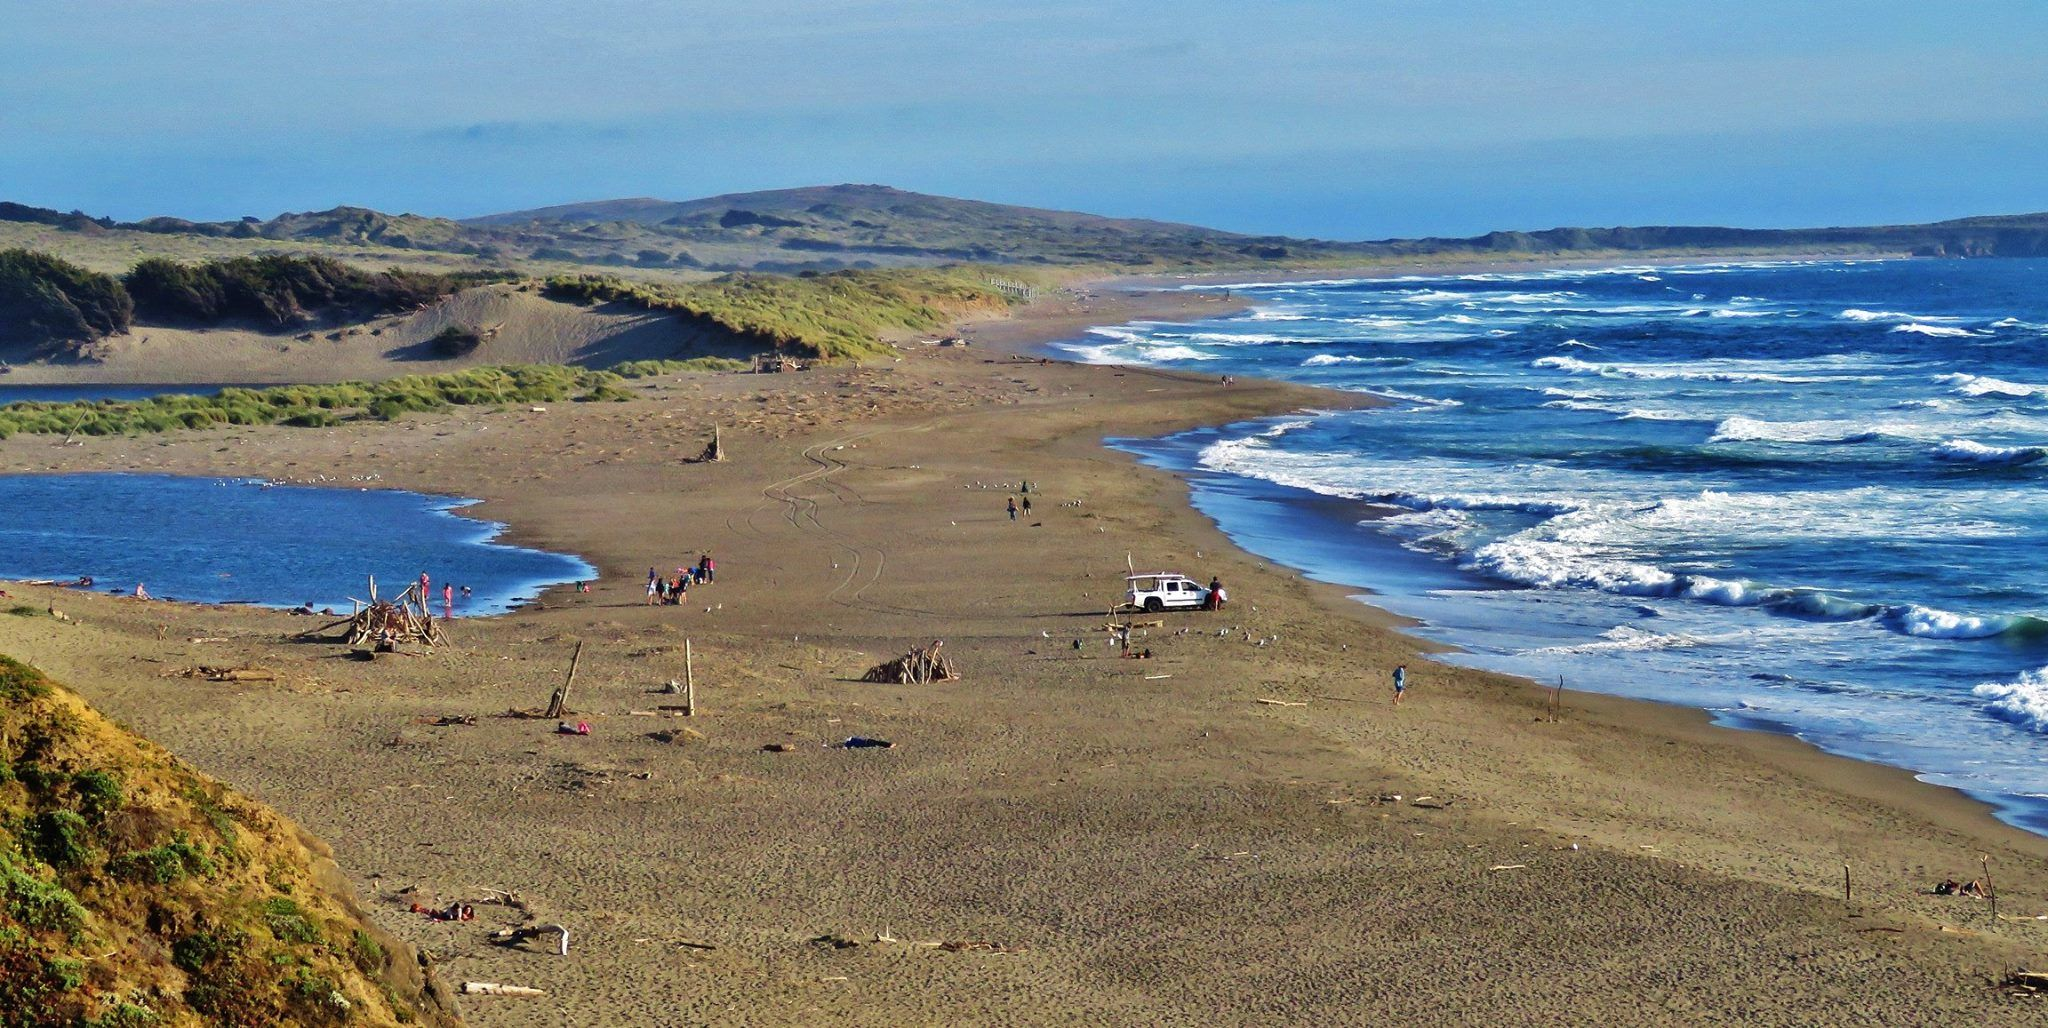 The mouth of Salmon Creek, Ca.  This is one of my favorite beaches.  Today this beach was on Shark Watch.  The Great Whites are swimming closer to the Sonoma Coast beaches today.  6-9-16  JM.